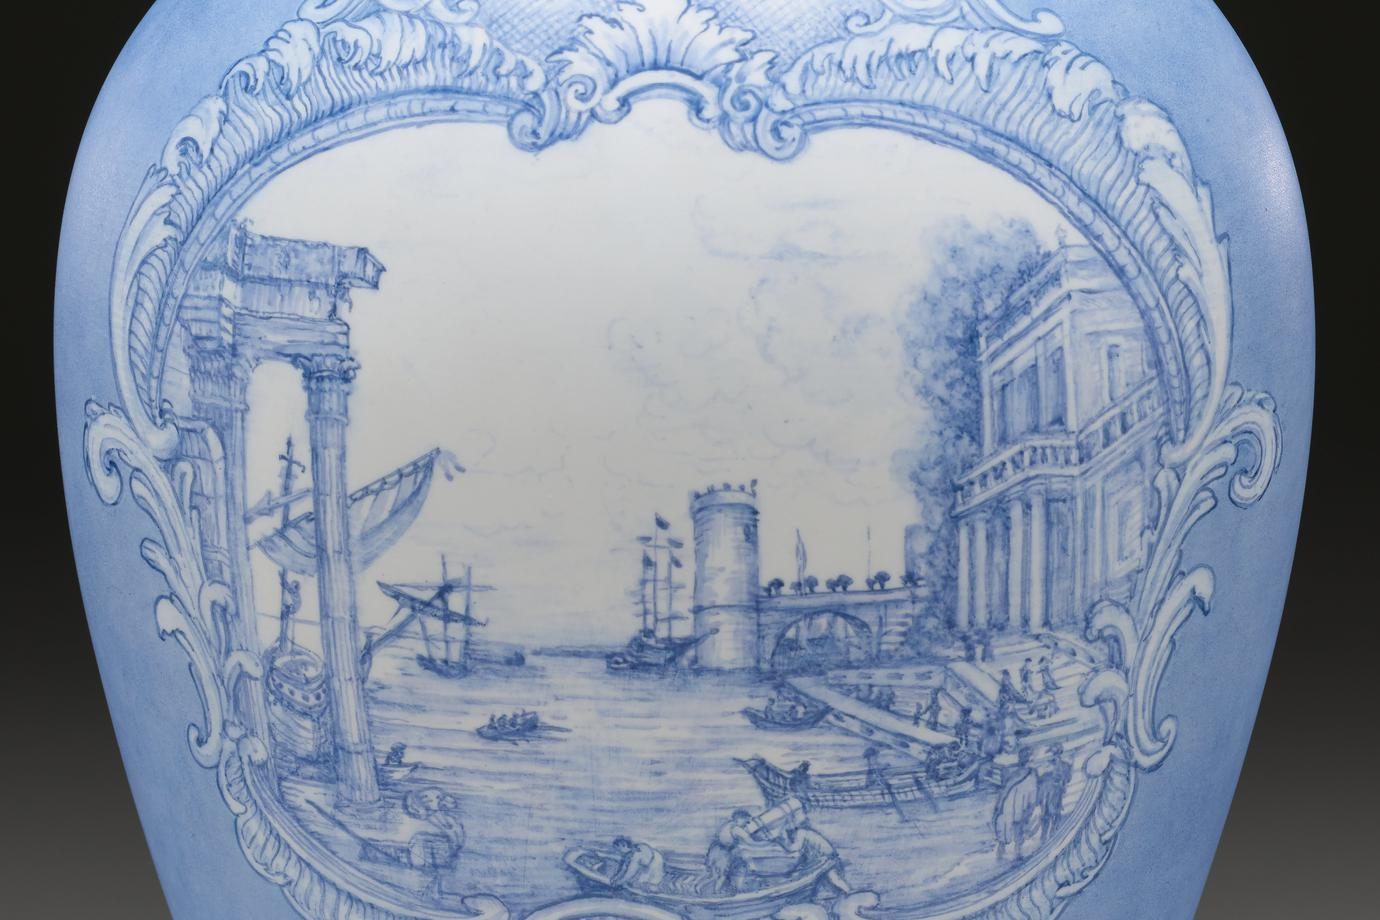 oval concave base; sides flare outward from base and flare inward toward short neck with small round mouth opening; white porcelain with light blue designs; wide sides decorated with sailing boat with sea creatures of various sorts--real and imagined; opposite side decorated with cartouche with Asian garden and sea scene with boat, birds and figures on bridge with flowers around outside of cartouche; band of flowers and fish around bottom edge; conical cover with rounded top and tiny knob covered with silver foil